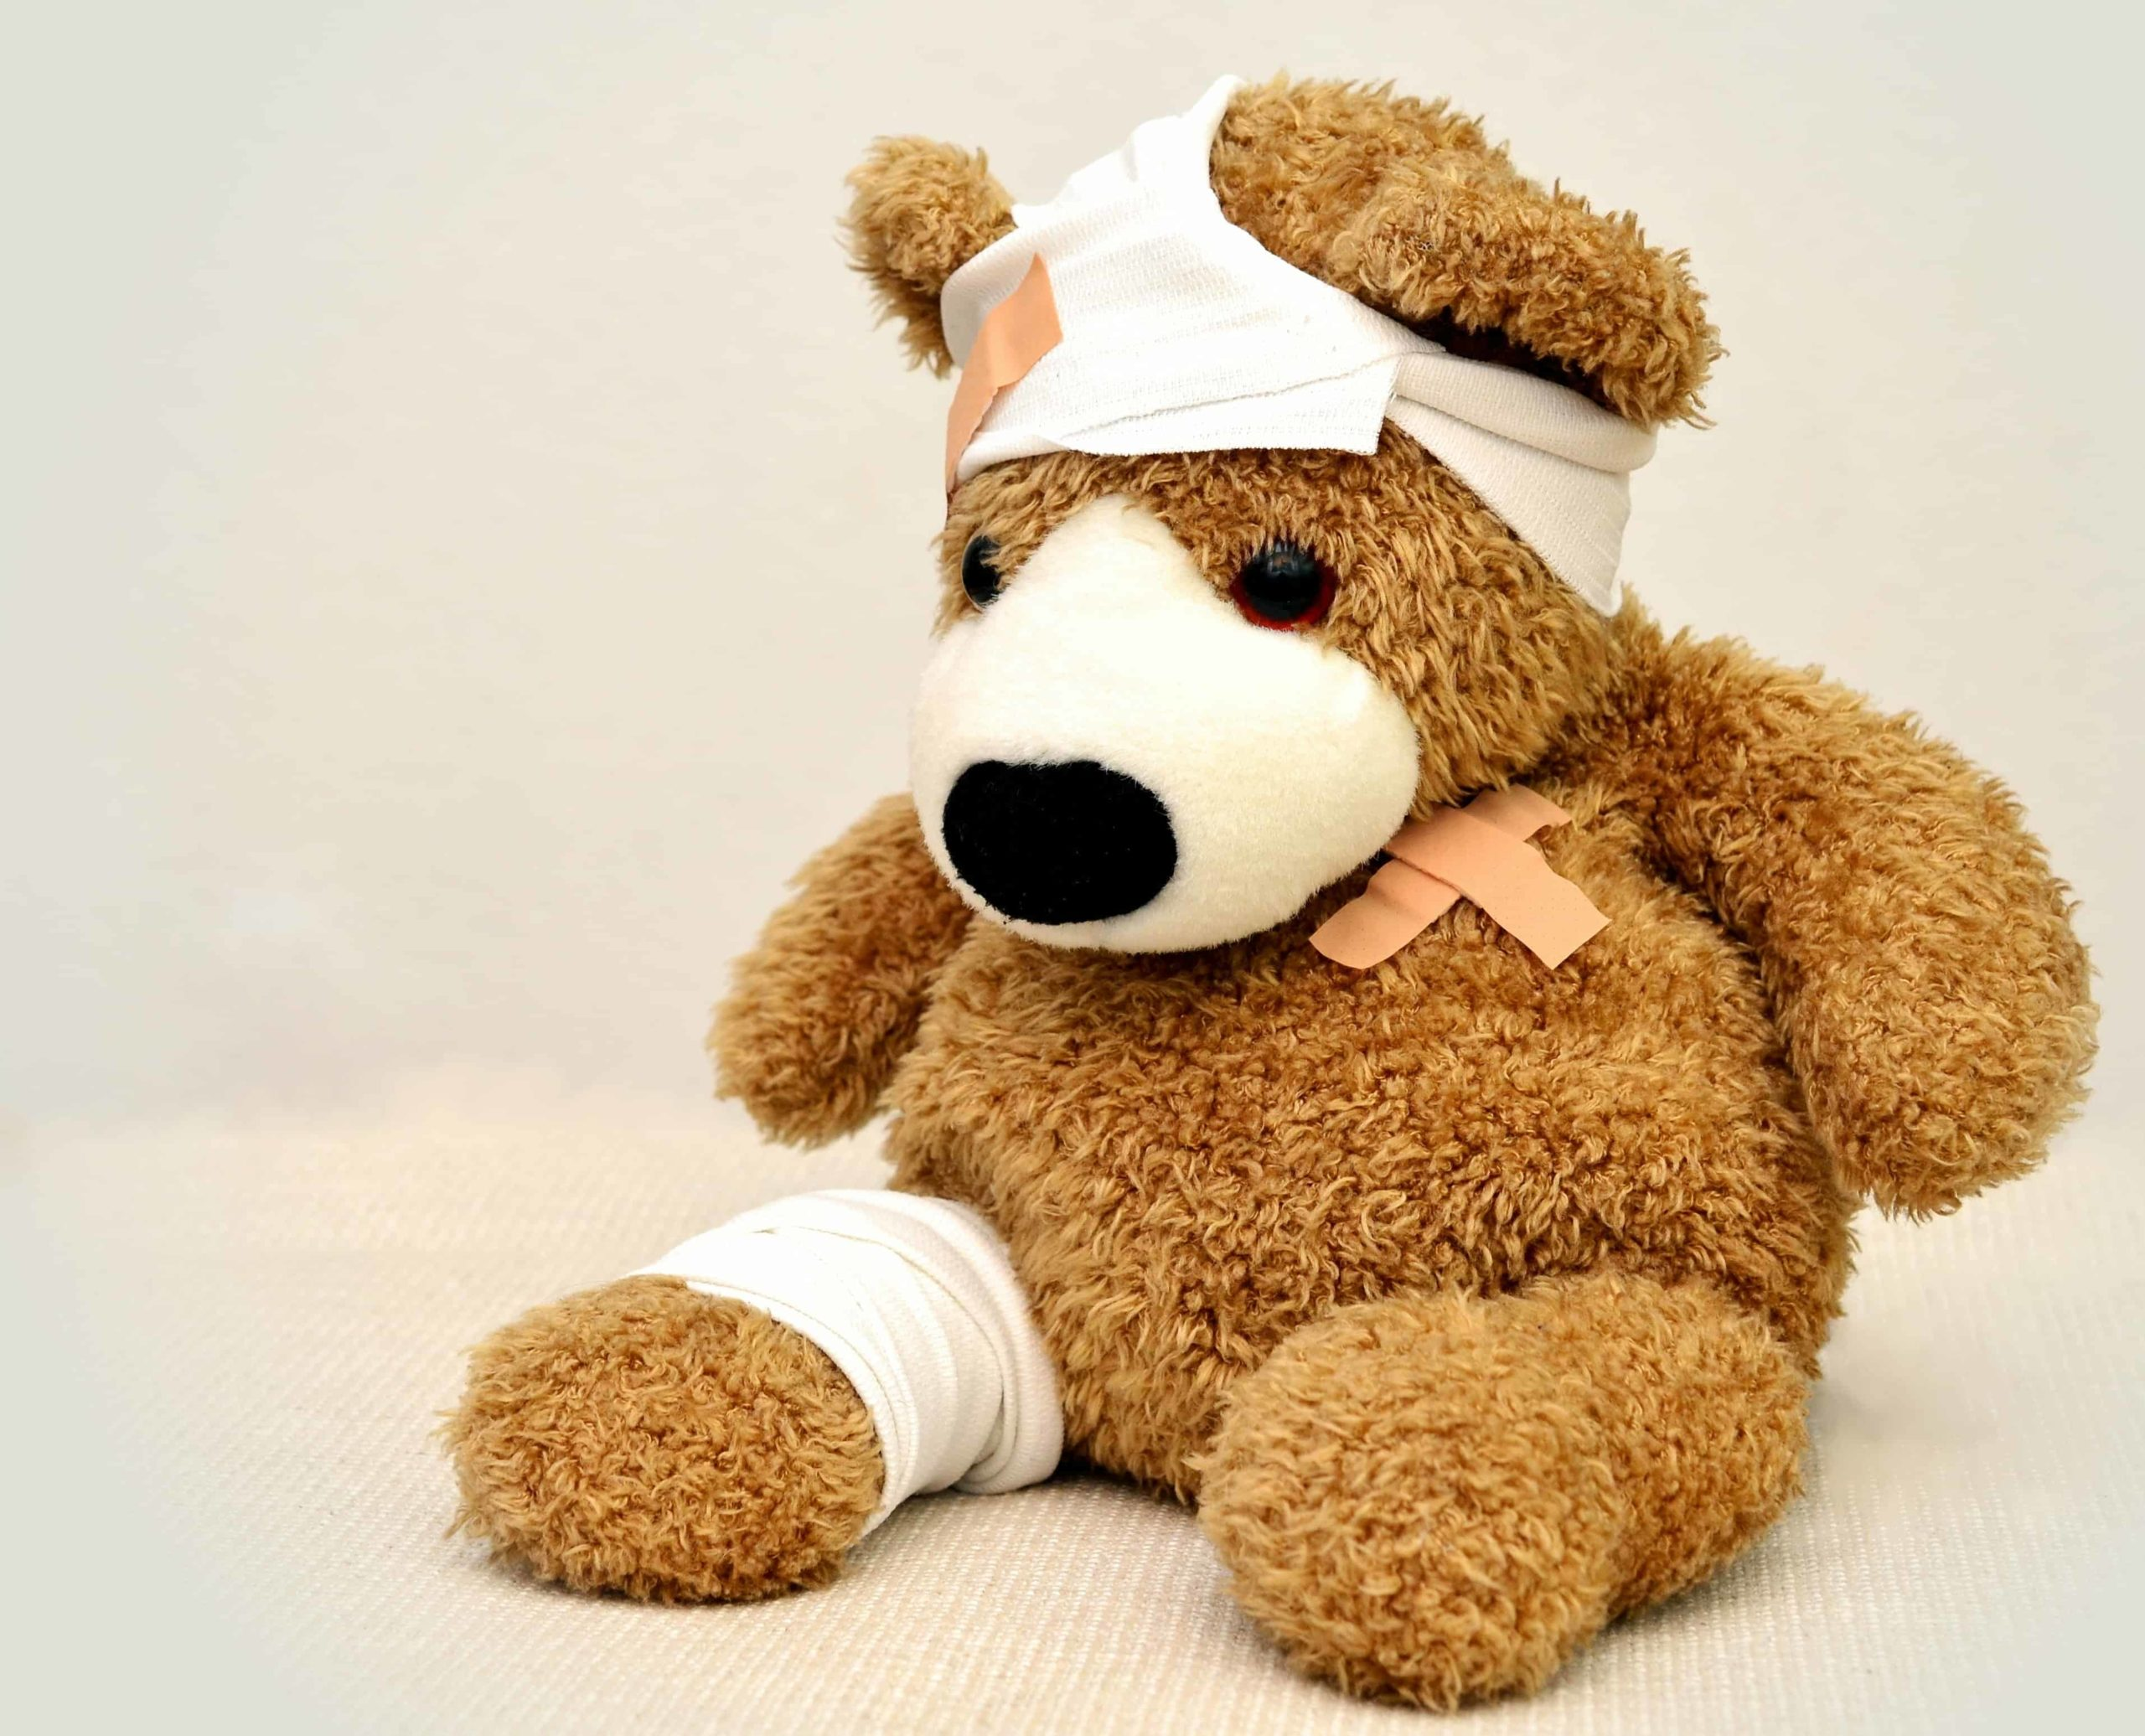 Brown and White Bear Plush Toy with bandages and plasters